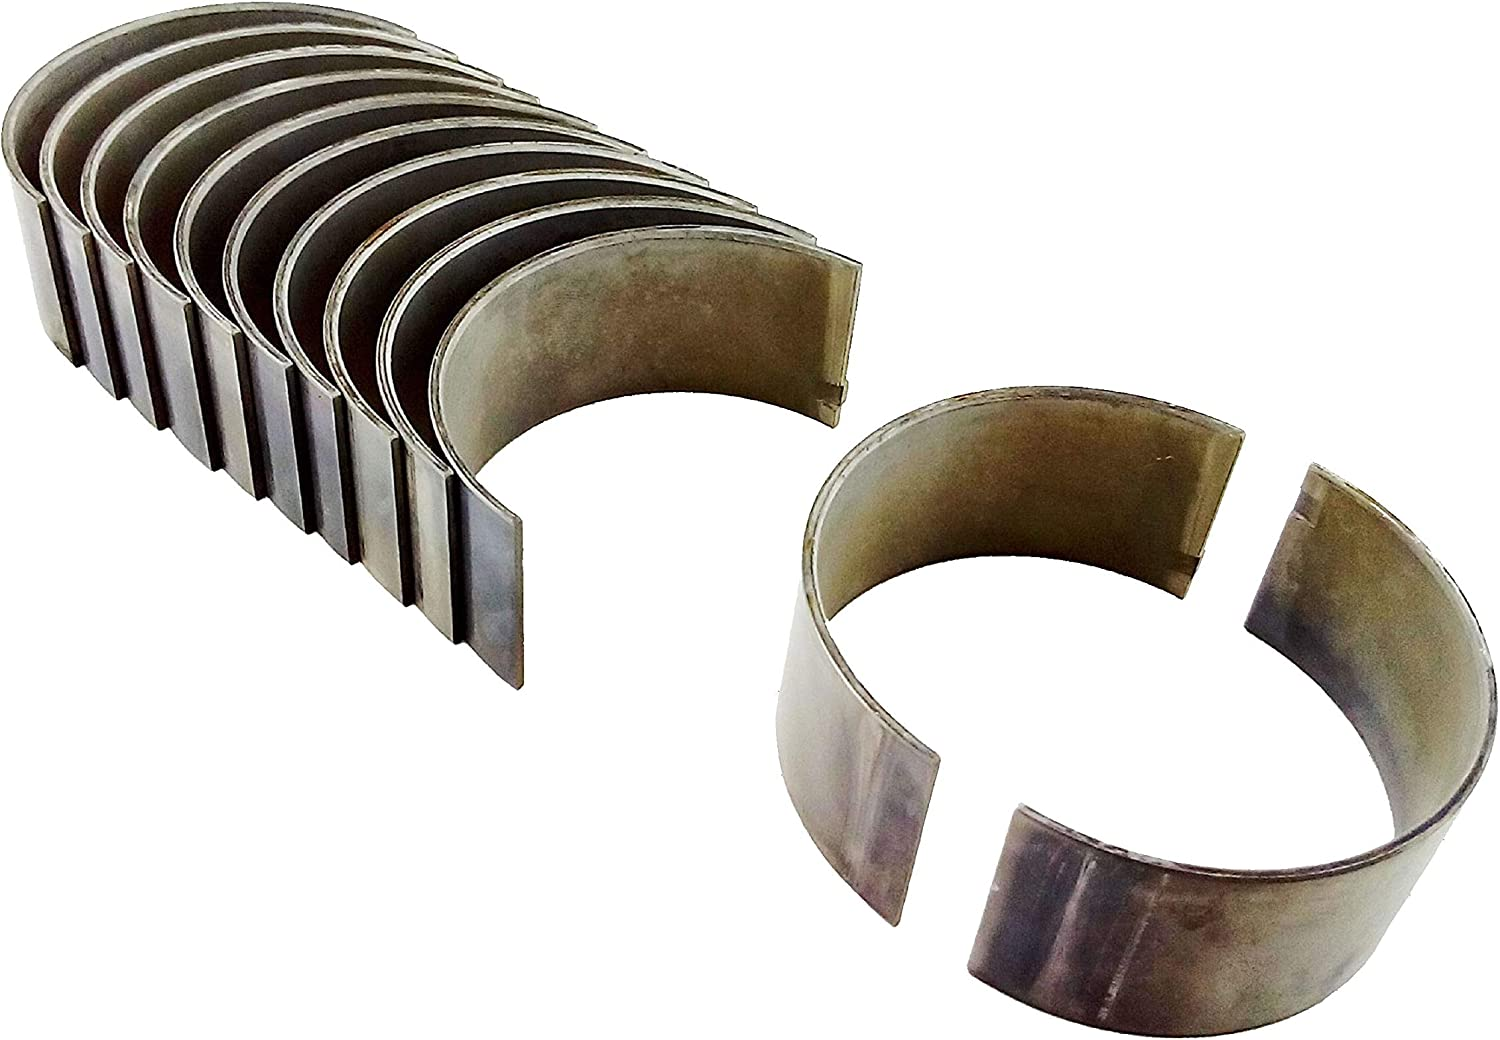 Standard Size Connecting Rod Bearings for 89-02 5.9L Fits Dodge Cummins Diesel 1354